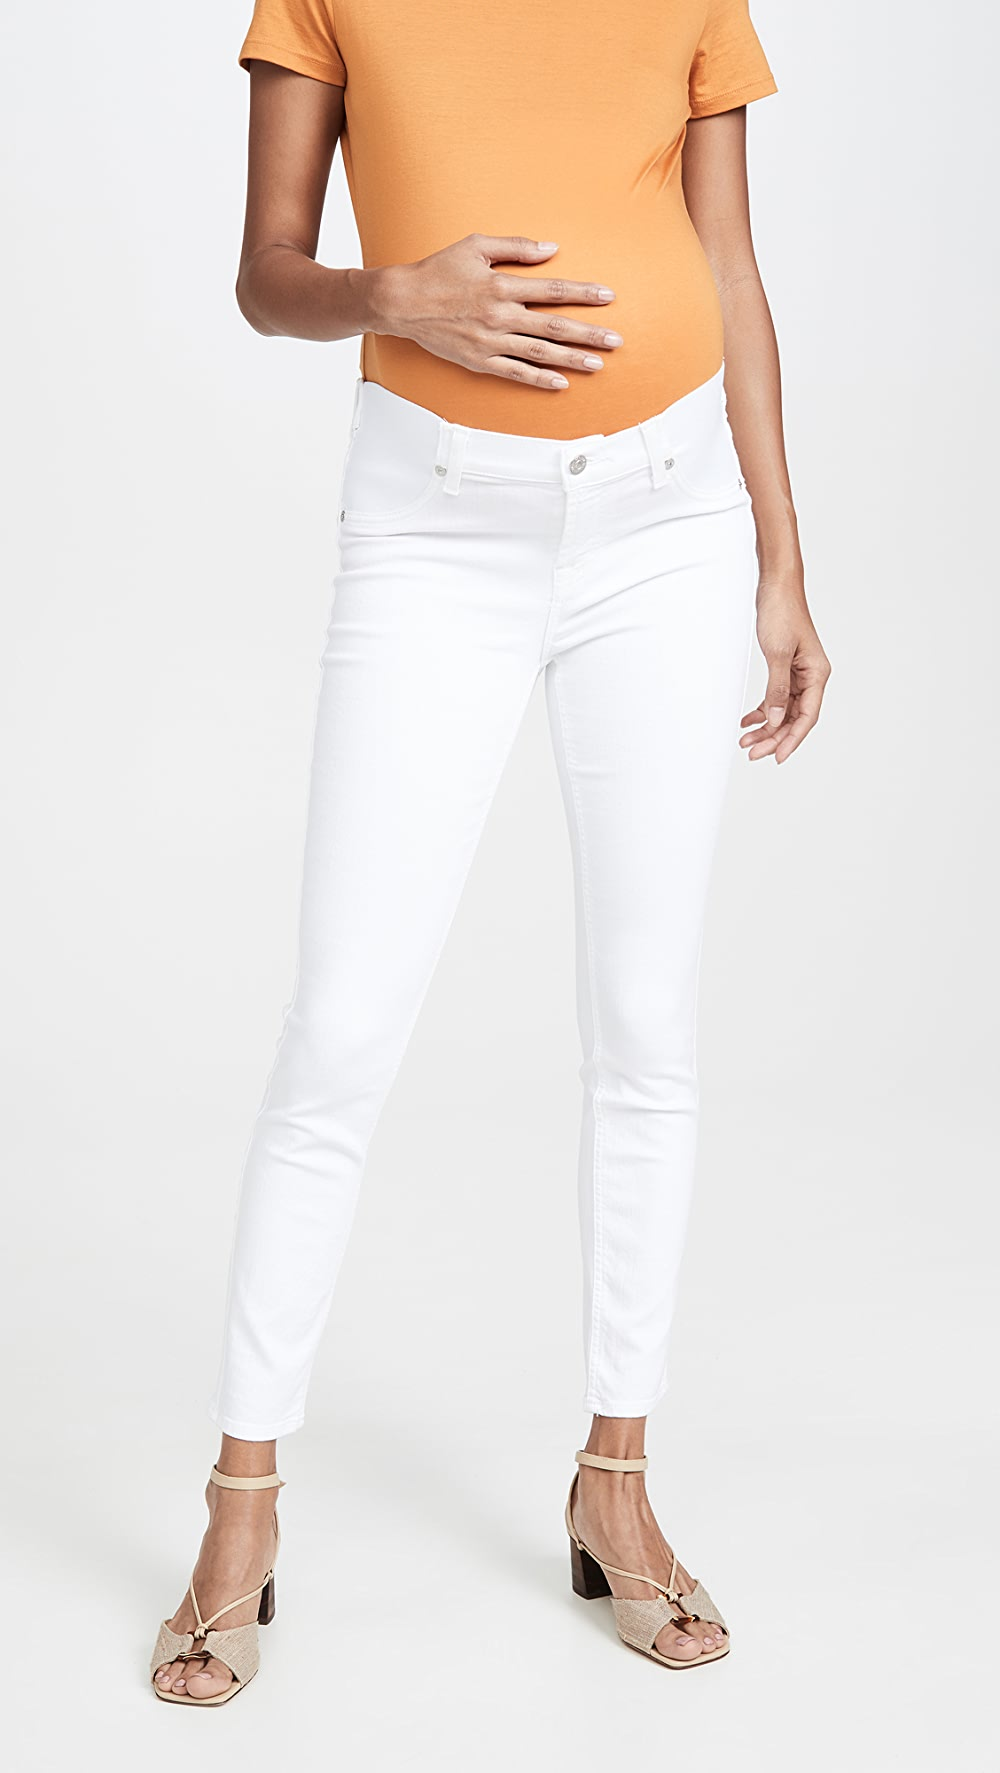 Frank 7 For All Mankind - The Ankle Skinny Maternity Jeans 100% Original